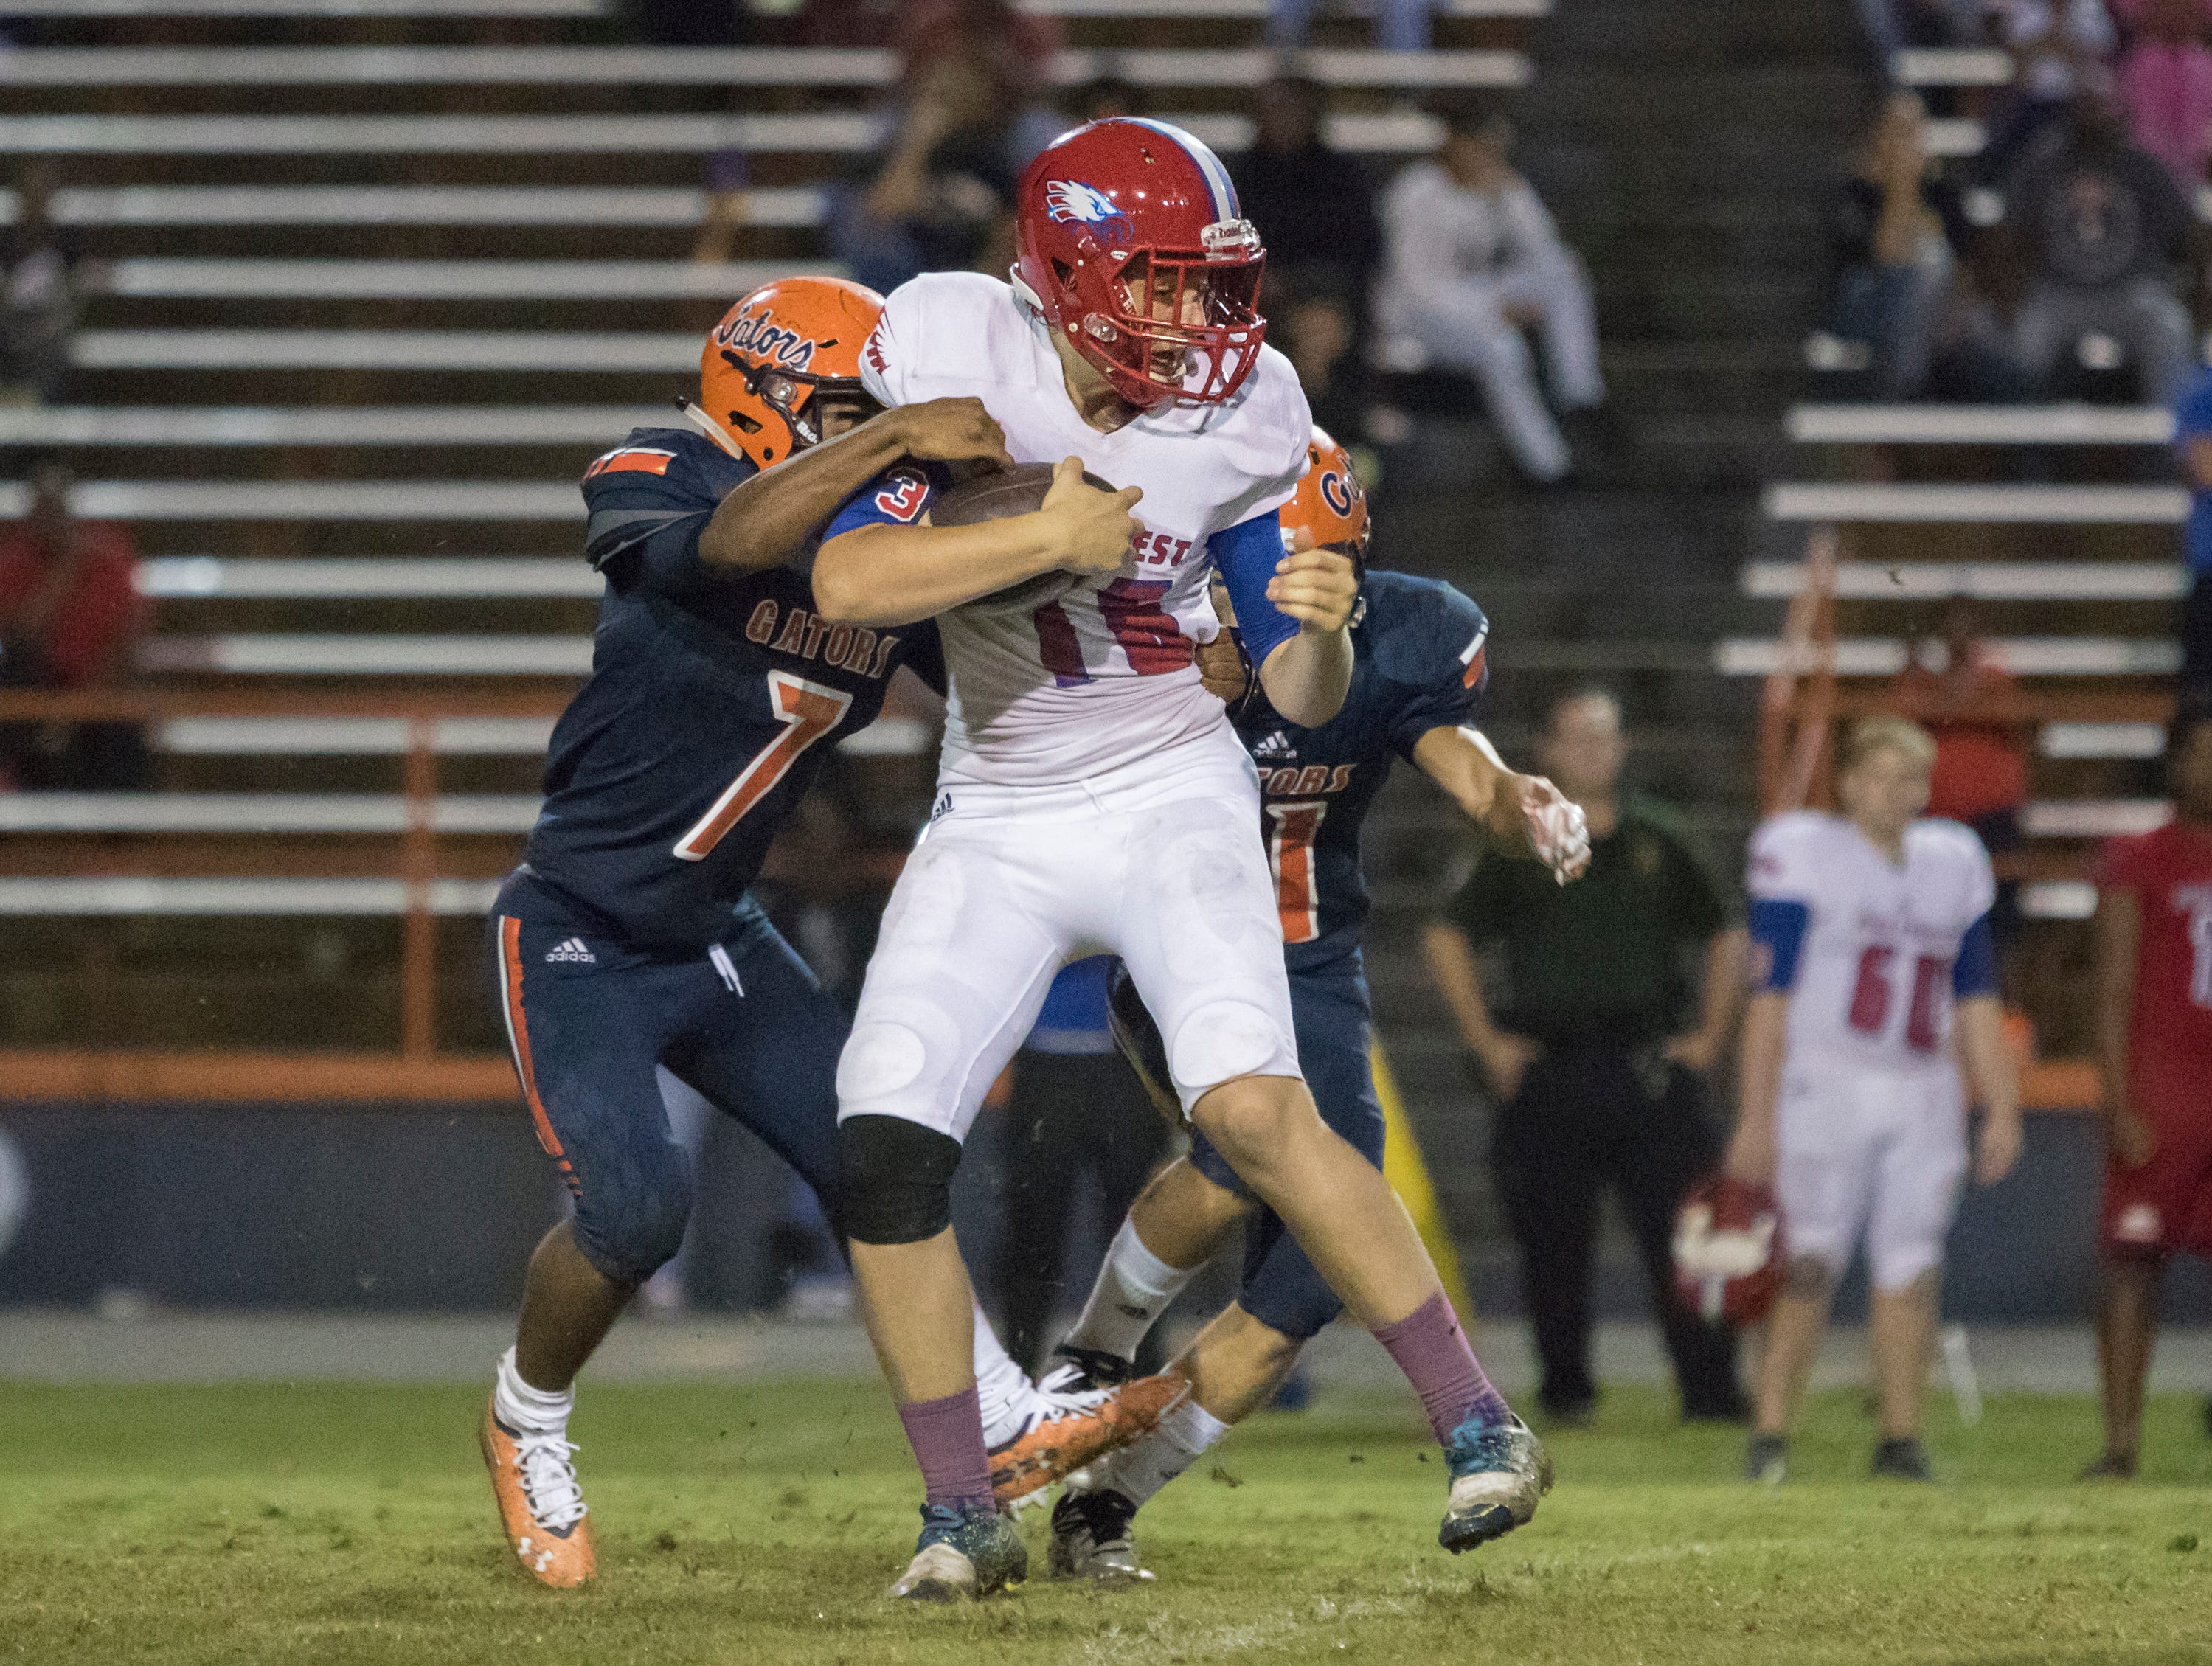 Punter Bryce Alderman (16) is tackled after fumbling a snap during the Pine Forest vs Escambia football game at Escambia High School in Pensacola on Friday, September 28, 2018.